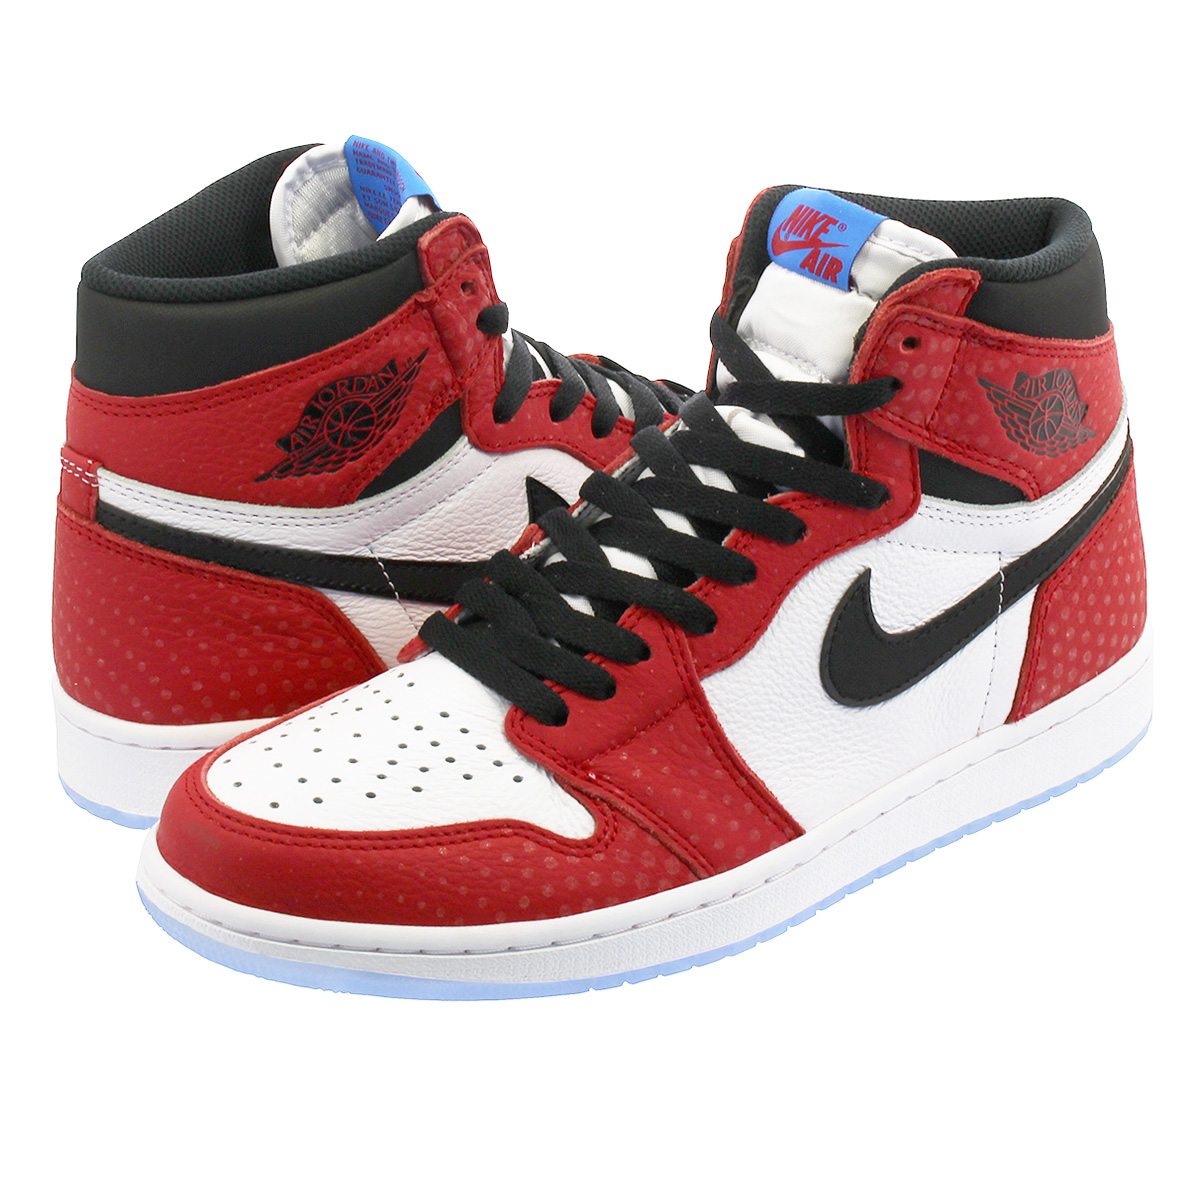 new style 7d32a 34f6c NIKE AIR JORDAN 1 RETRO HIGH OG Nike Air Jordan 1 nostalgic high OG GYM  RED/WHITE/PHOTO BLUE/BLACK 555,088-602